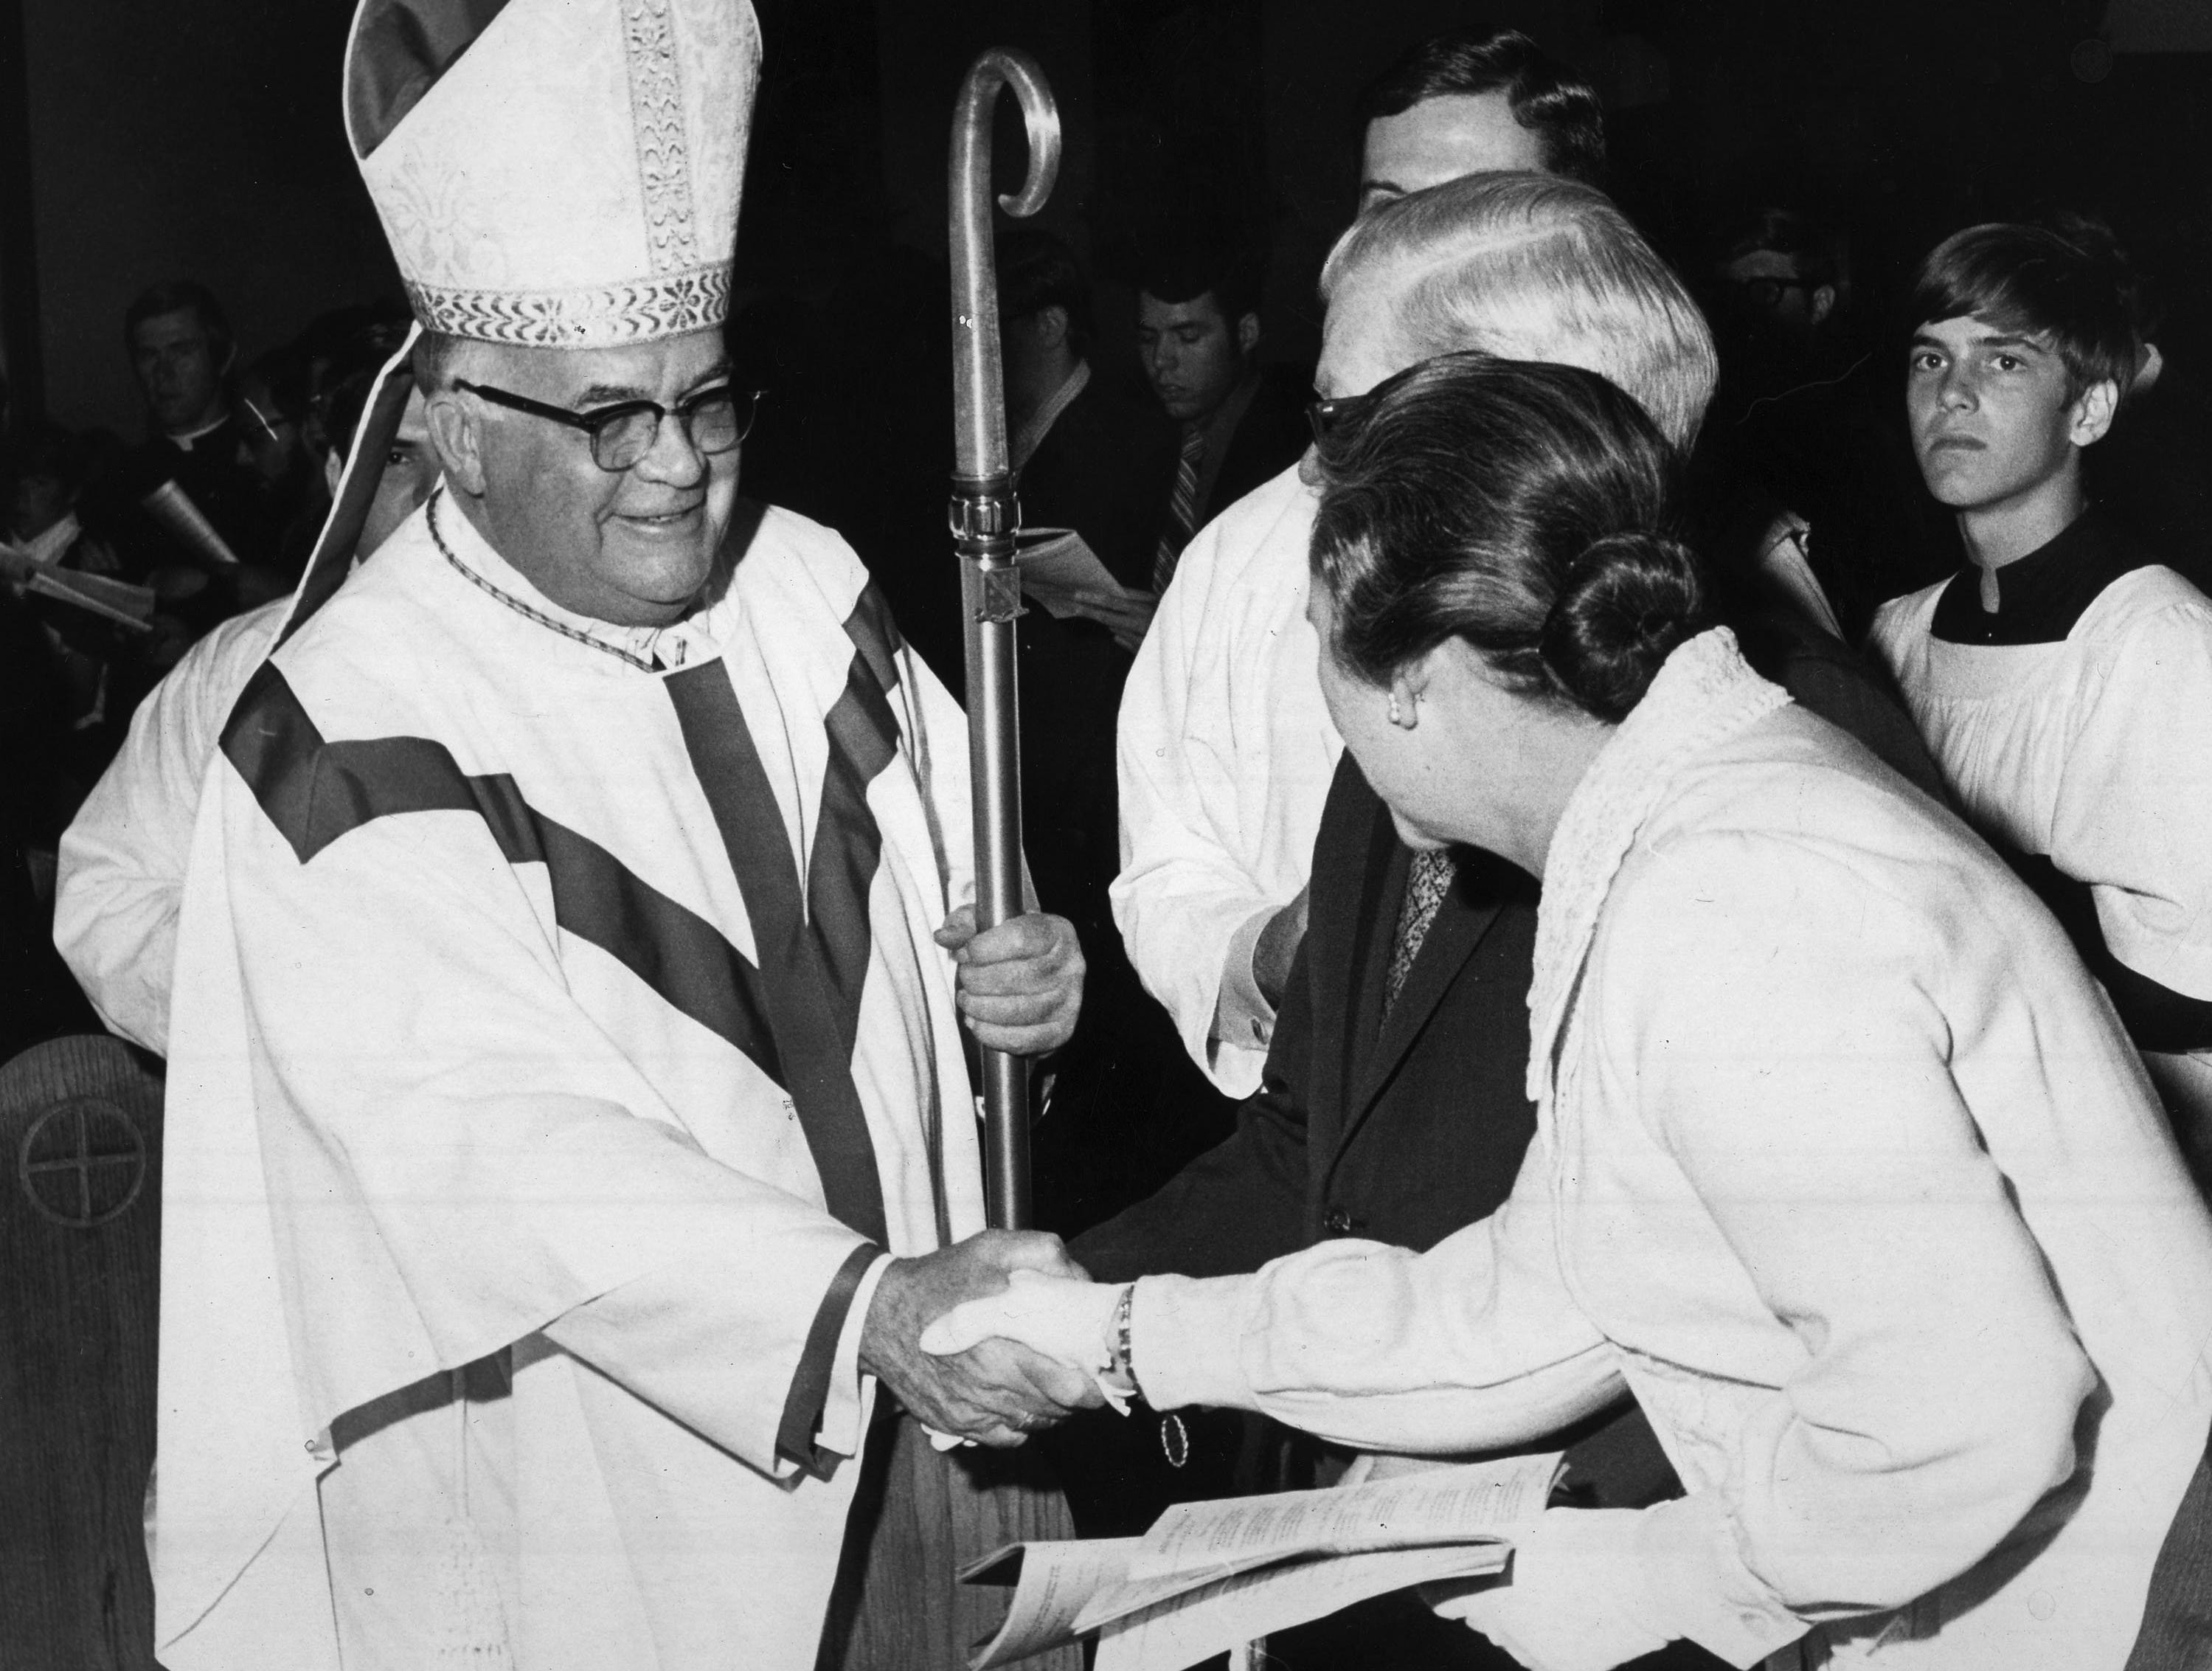 052111 BYGONE             Bishop Carroll T. Dozier, of the Catholic Diocese of Memphis, shakes hands with Dr. and Mrs. David Taylor during a processional on May 21, 1971.  (Richard Gardner / The Commercial Appeal files)